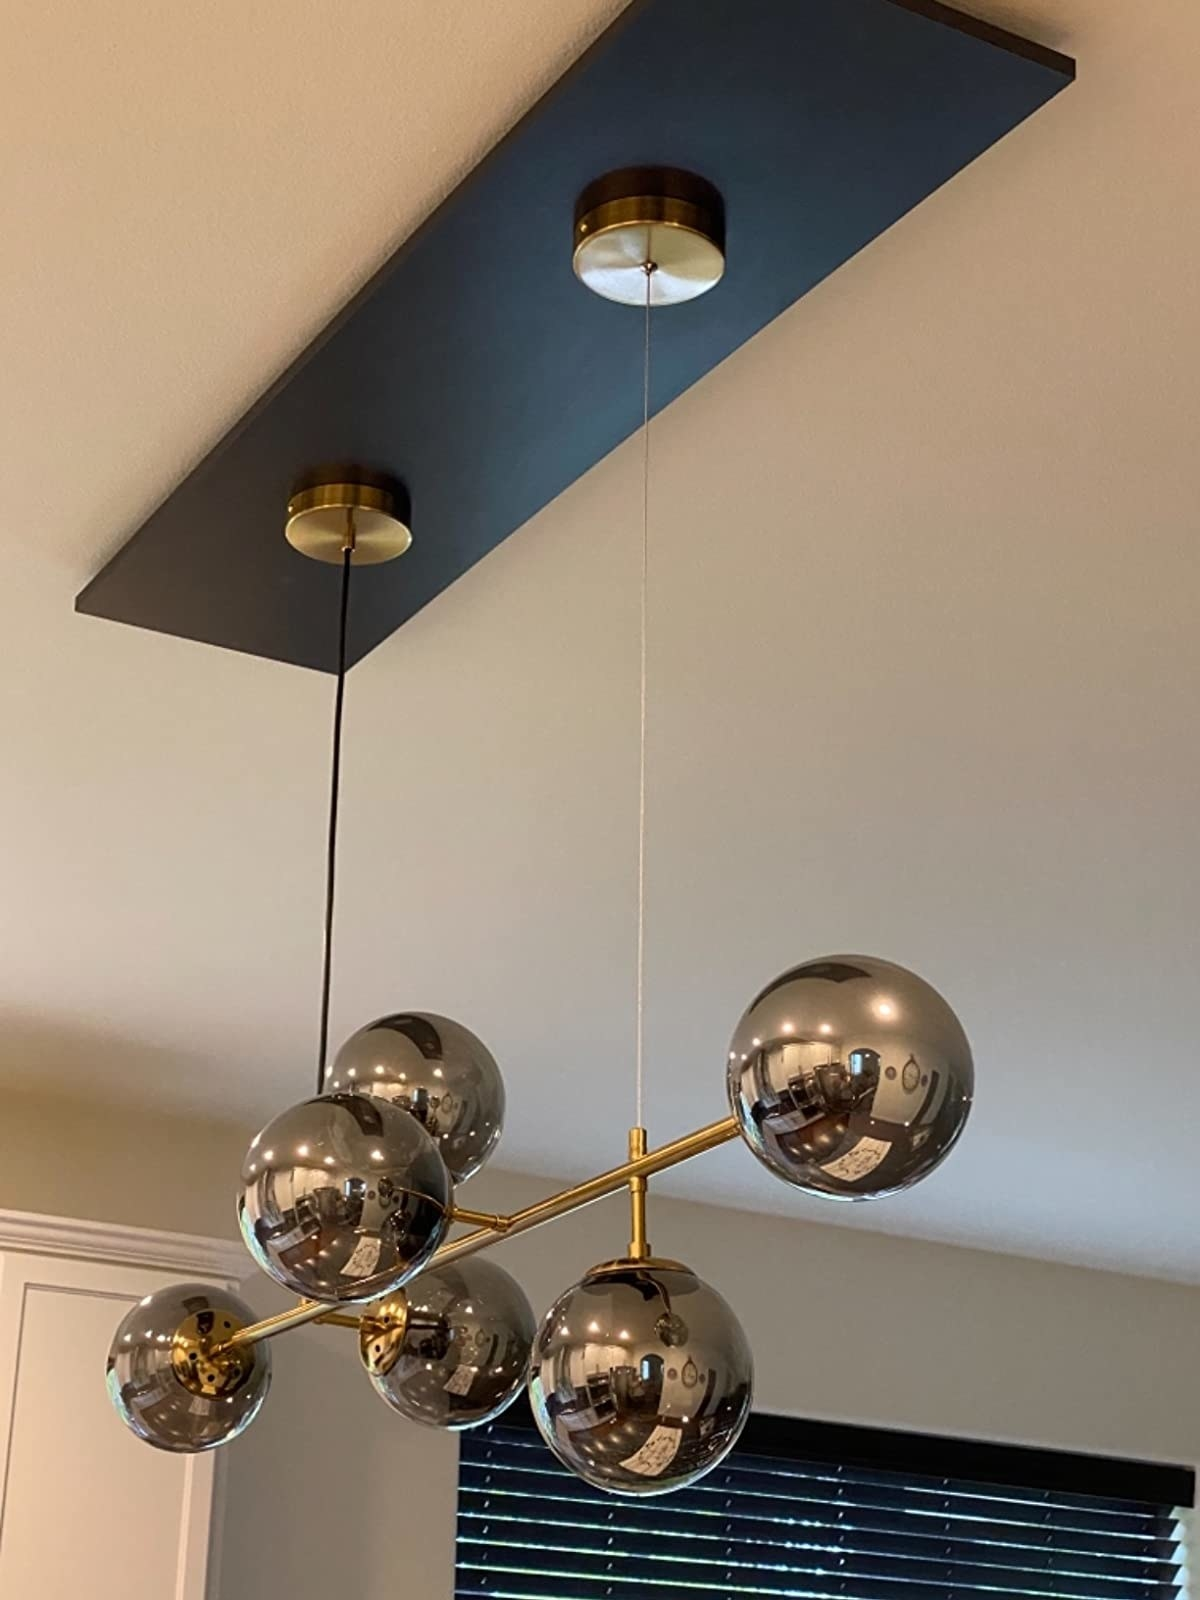 Reviewer's chandelier is shown close up